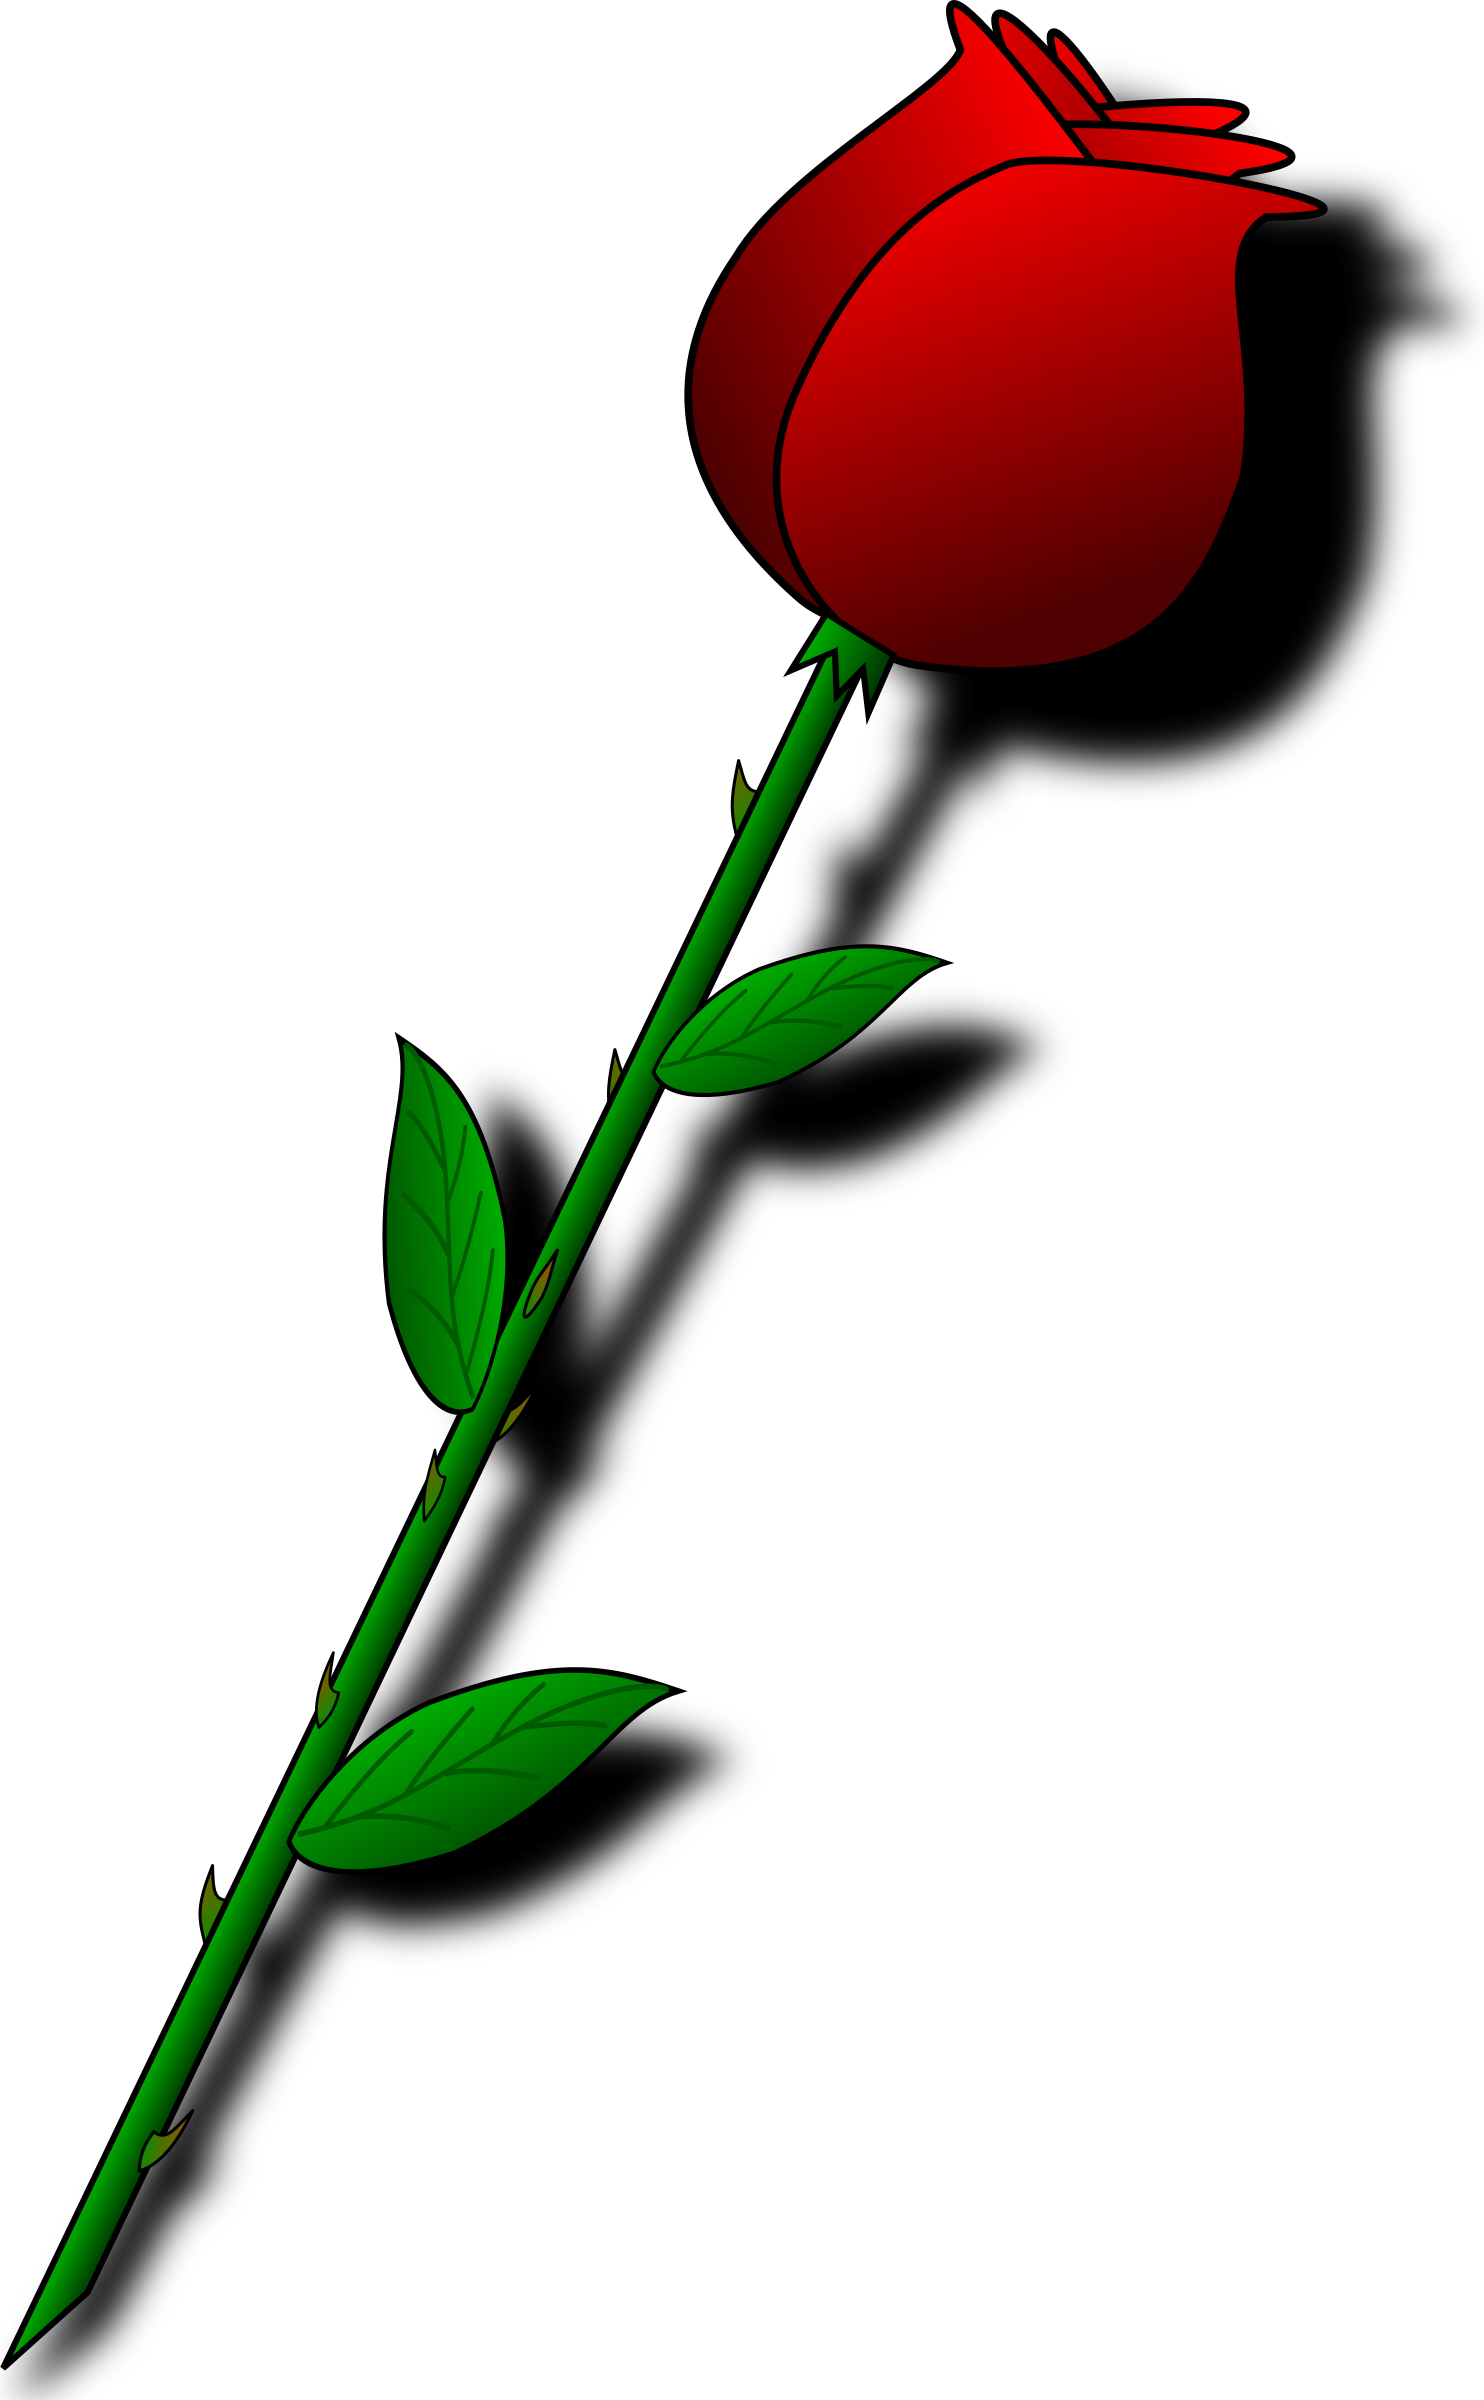 Clipart rose animated. Big image png